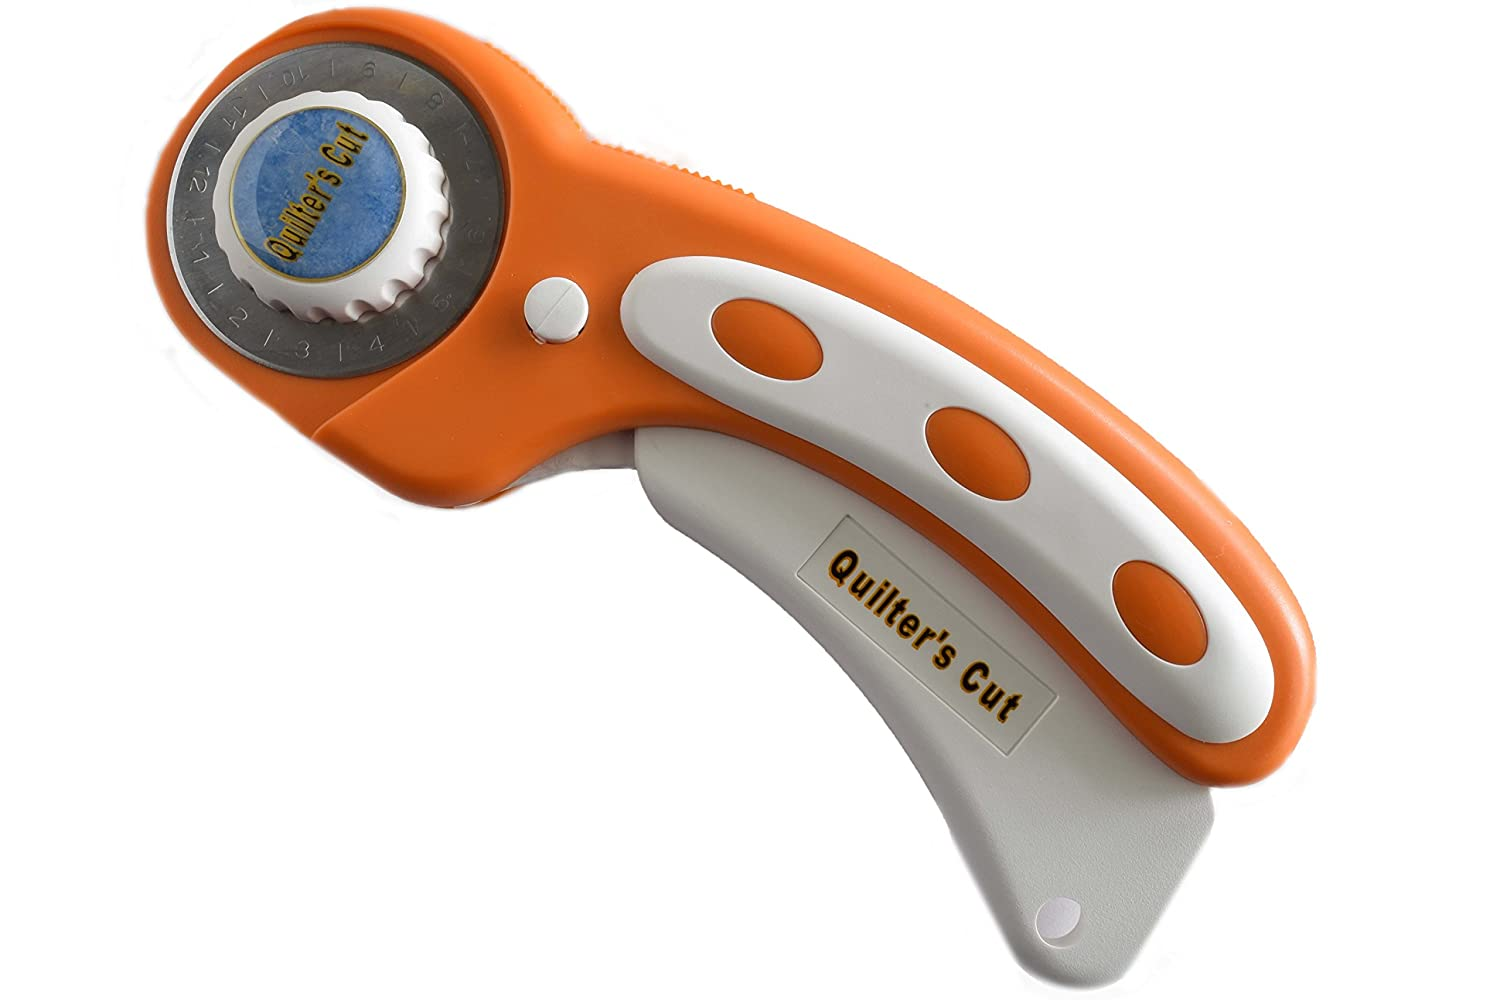 Quilter's Cut Deluxe Rotary Cutter, 45mm Ergonomic Handle Works With All Major Brands (45mm, Yellow) Quilter' s Cut 45mm Handle